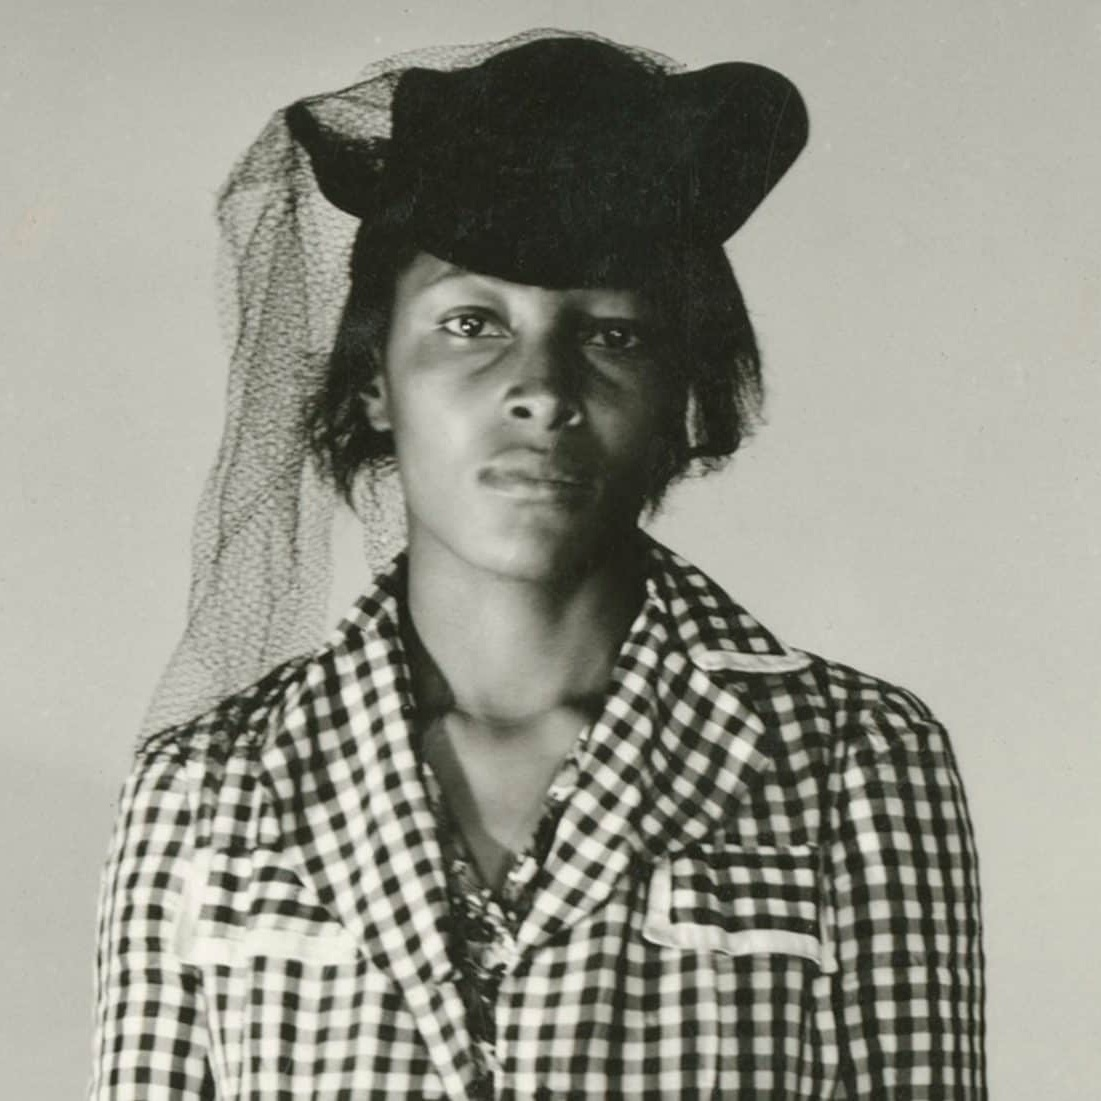 RECY TAYLOR: HOW ONE WOMAN'S REFUSAL TO STAY QUIET SHAMED - AND CHANGED - AMERICA (THE TELEGRAPH)